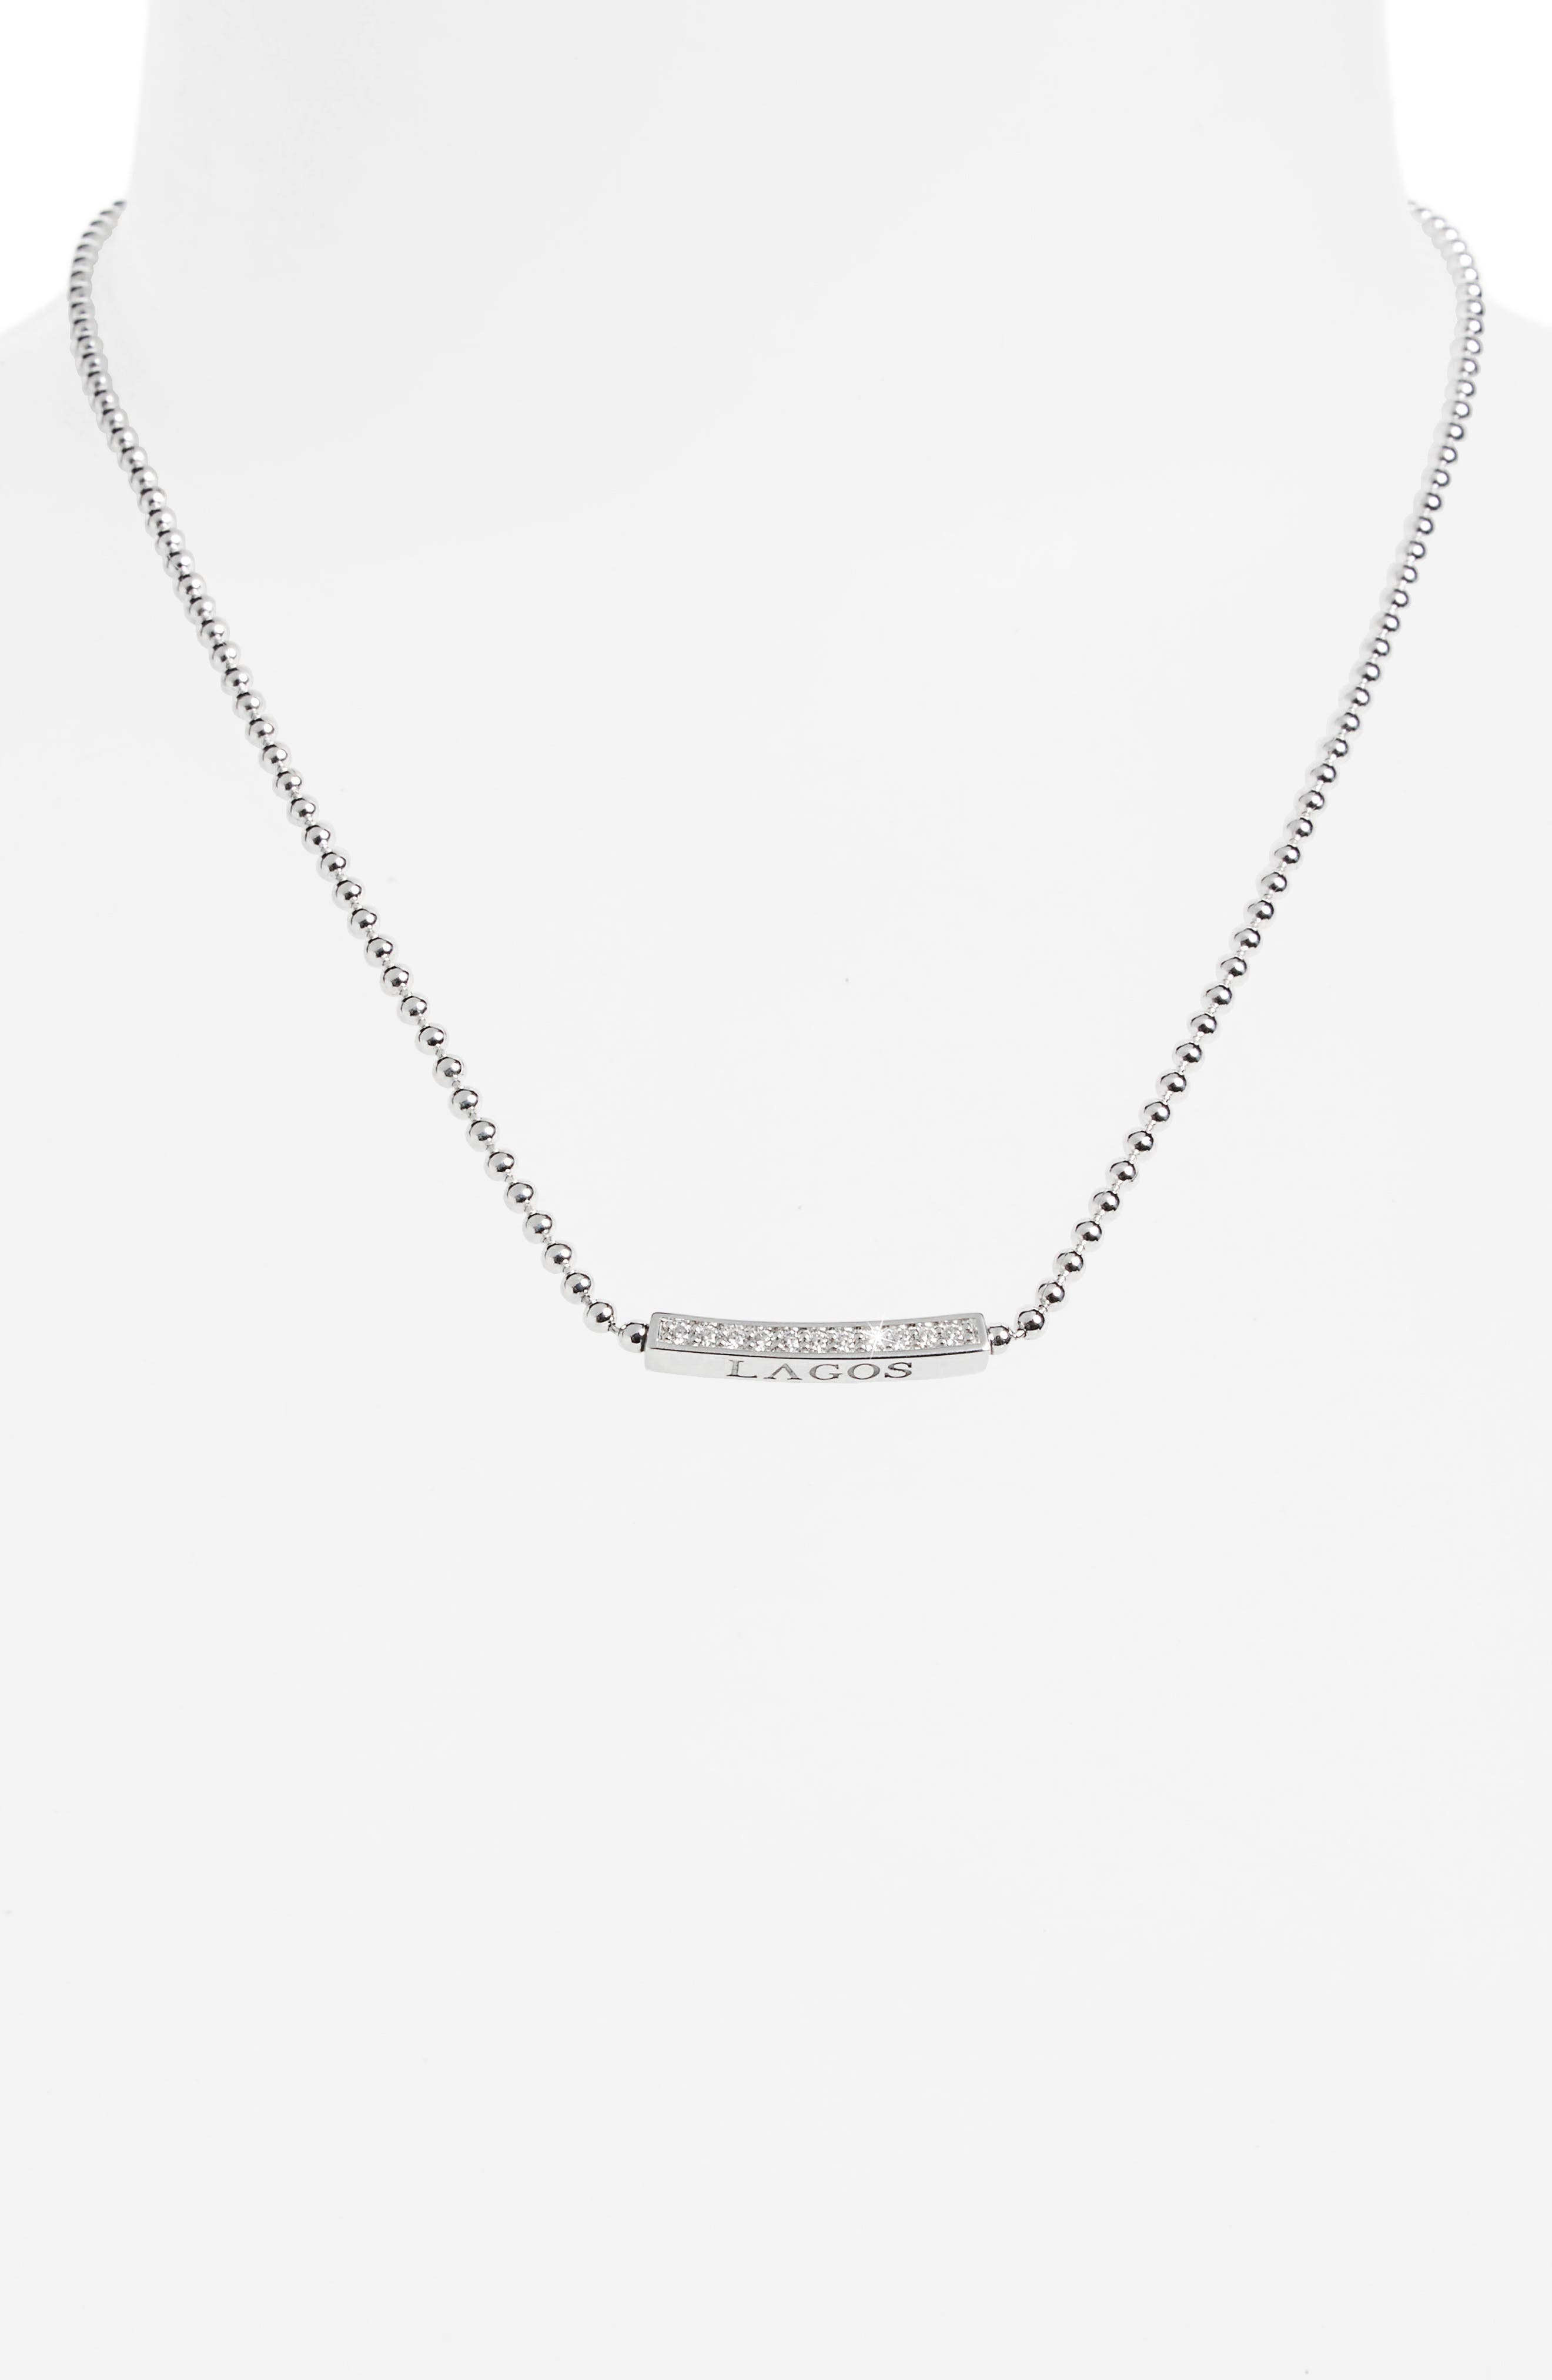 Caviar Spark Diamond Pendant Necklace,                             Alternate thumbnail 2, color,                             Silver/ Diamond